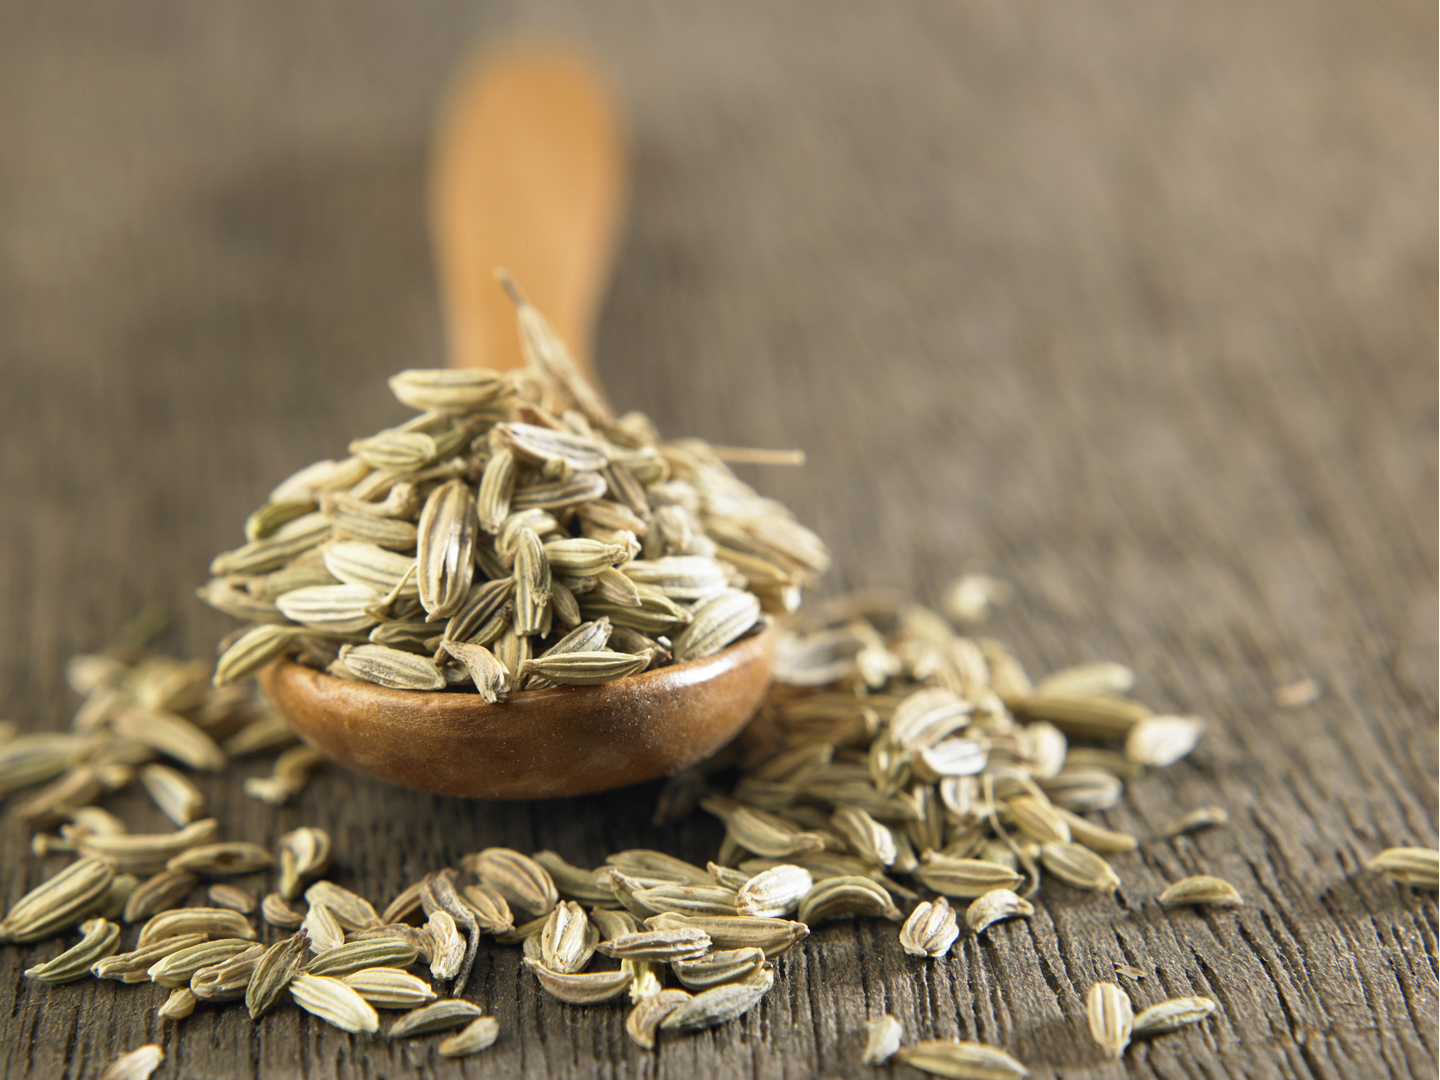 Cooking With Spices: Cumin - Dr. Weil's Healthy Kitchen